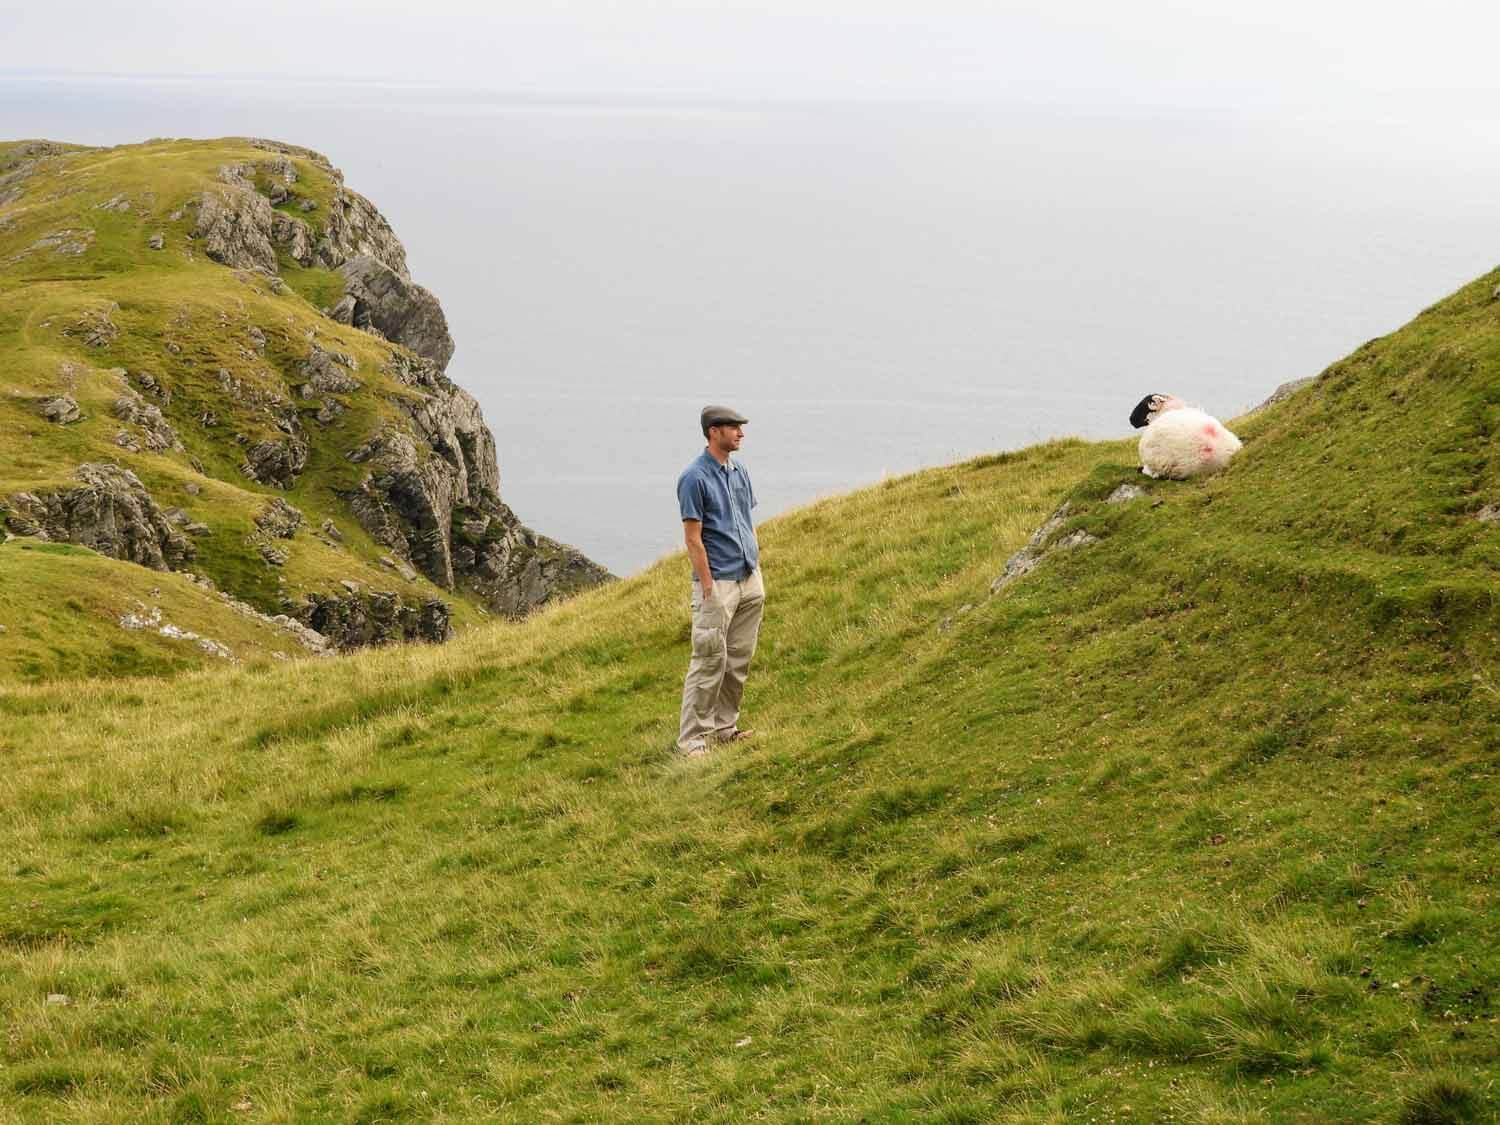 ireland-donegal-slieve-league-hubby-sheep.jpg